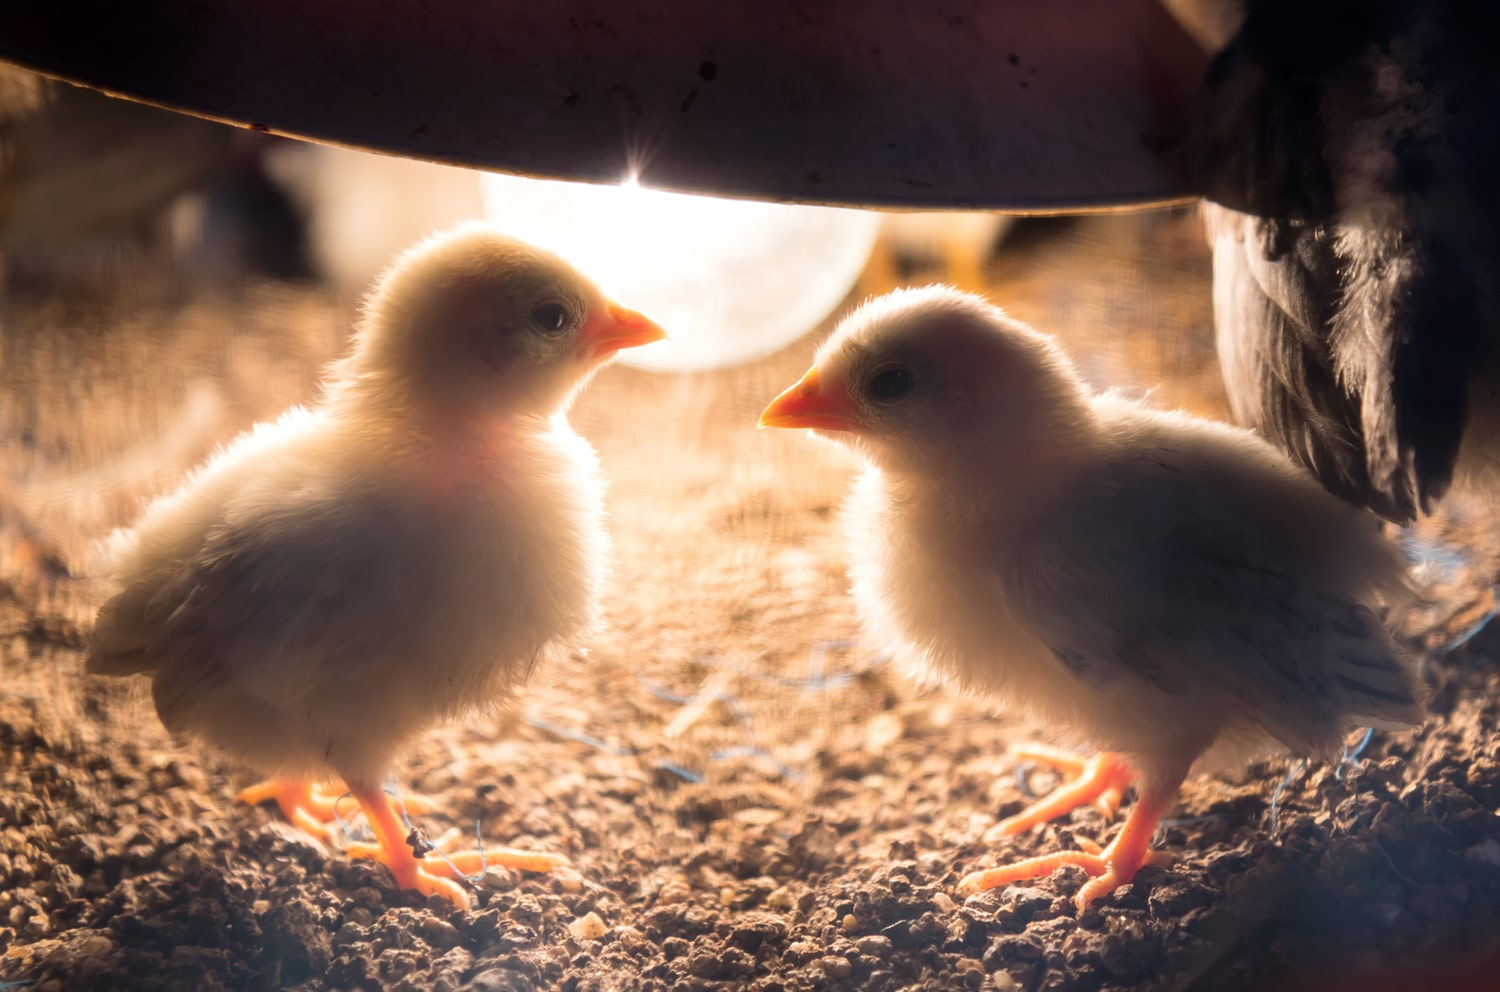 Baby Chick Care Blog